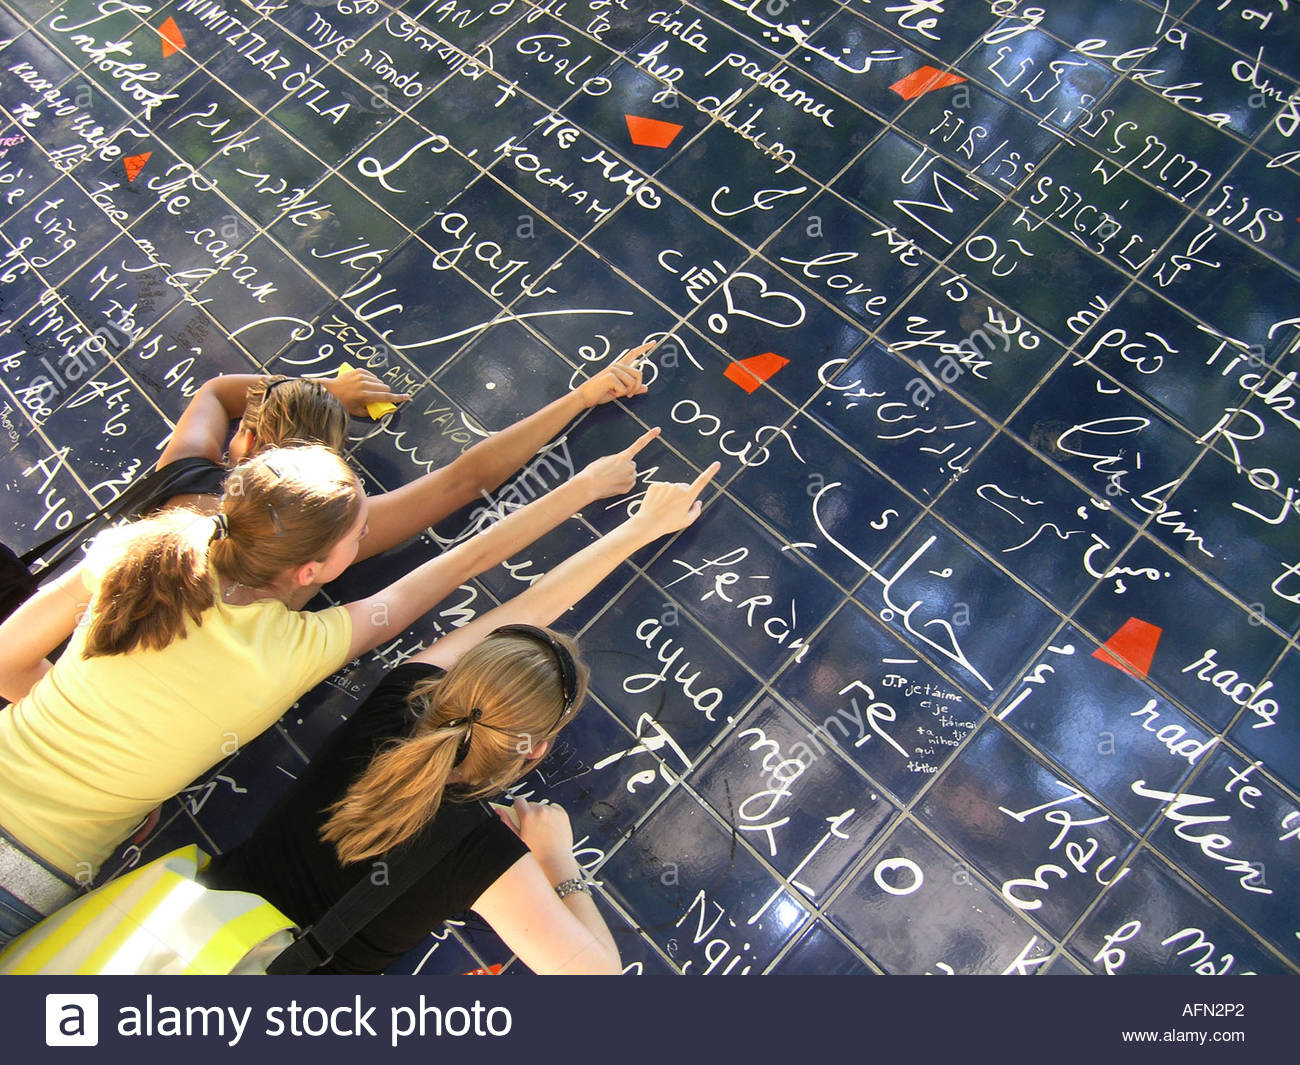 adolescent teenagers pointing at text 'I love you' on Parisian Love wall Place des Abbesses Paris France - Stock Image